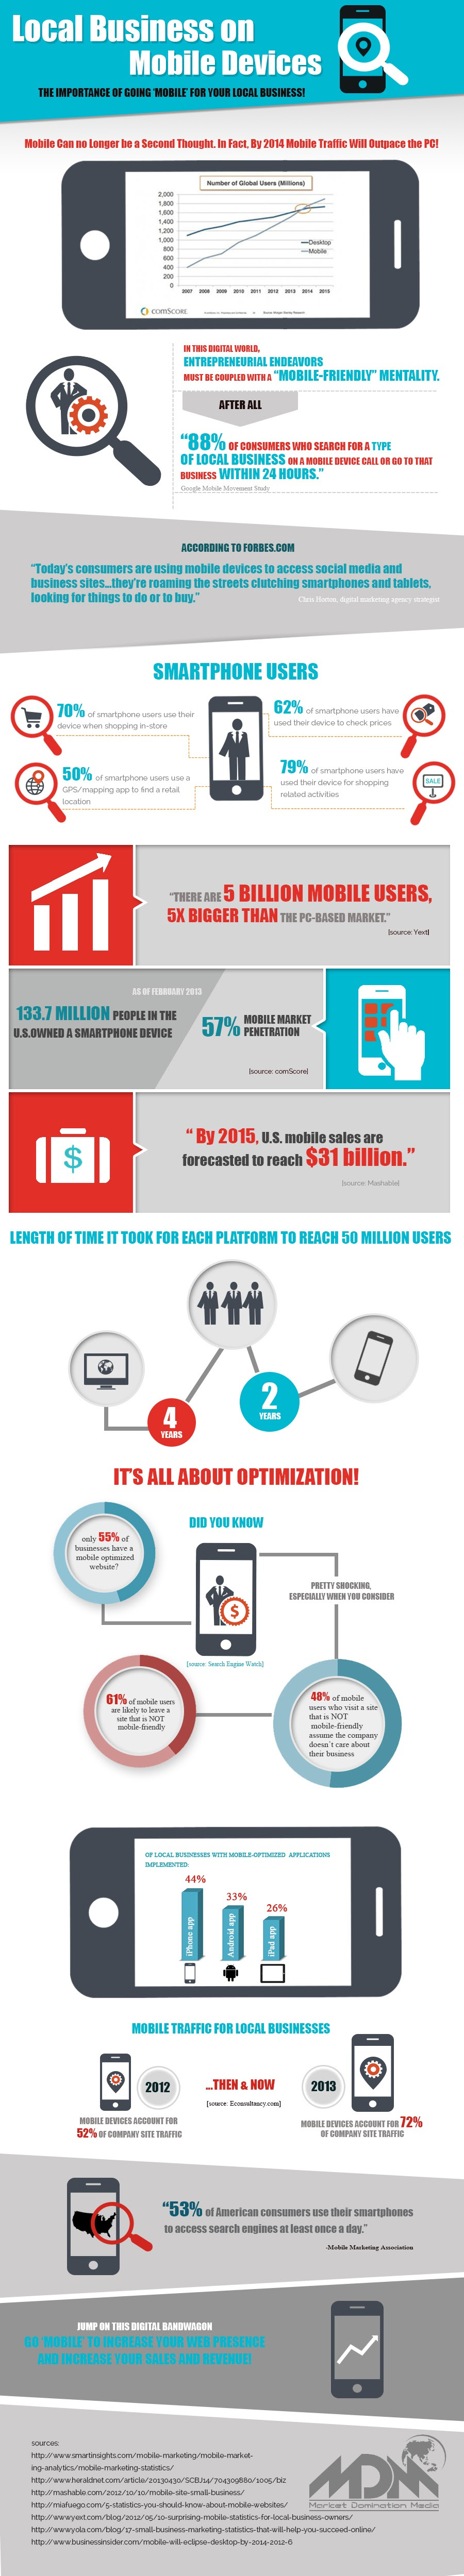 "local business on mobile devices - the importance of going ""mobile"" for your local business - infographic"